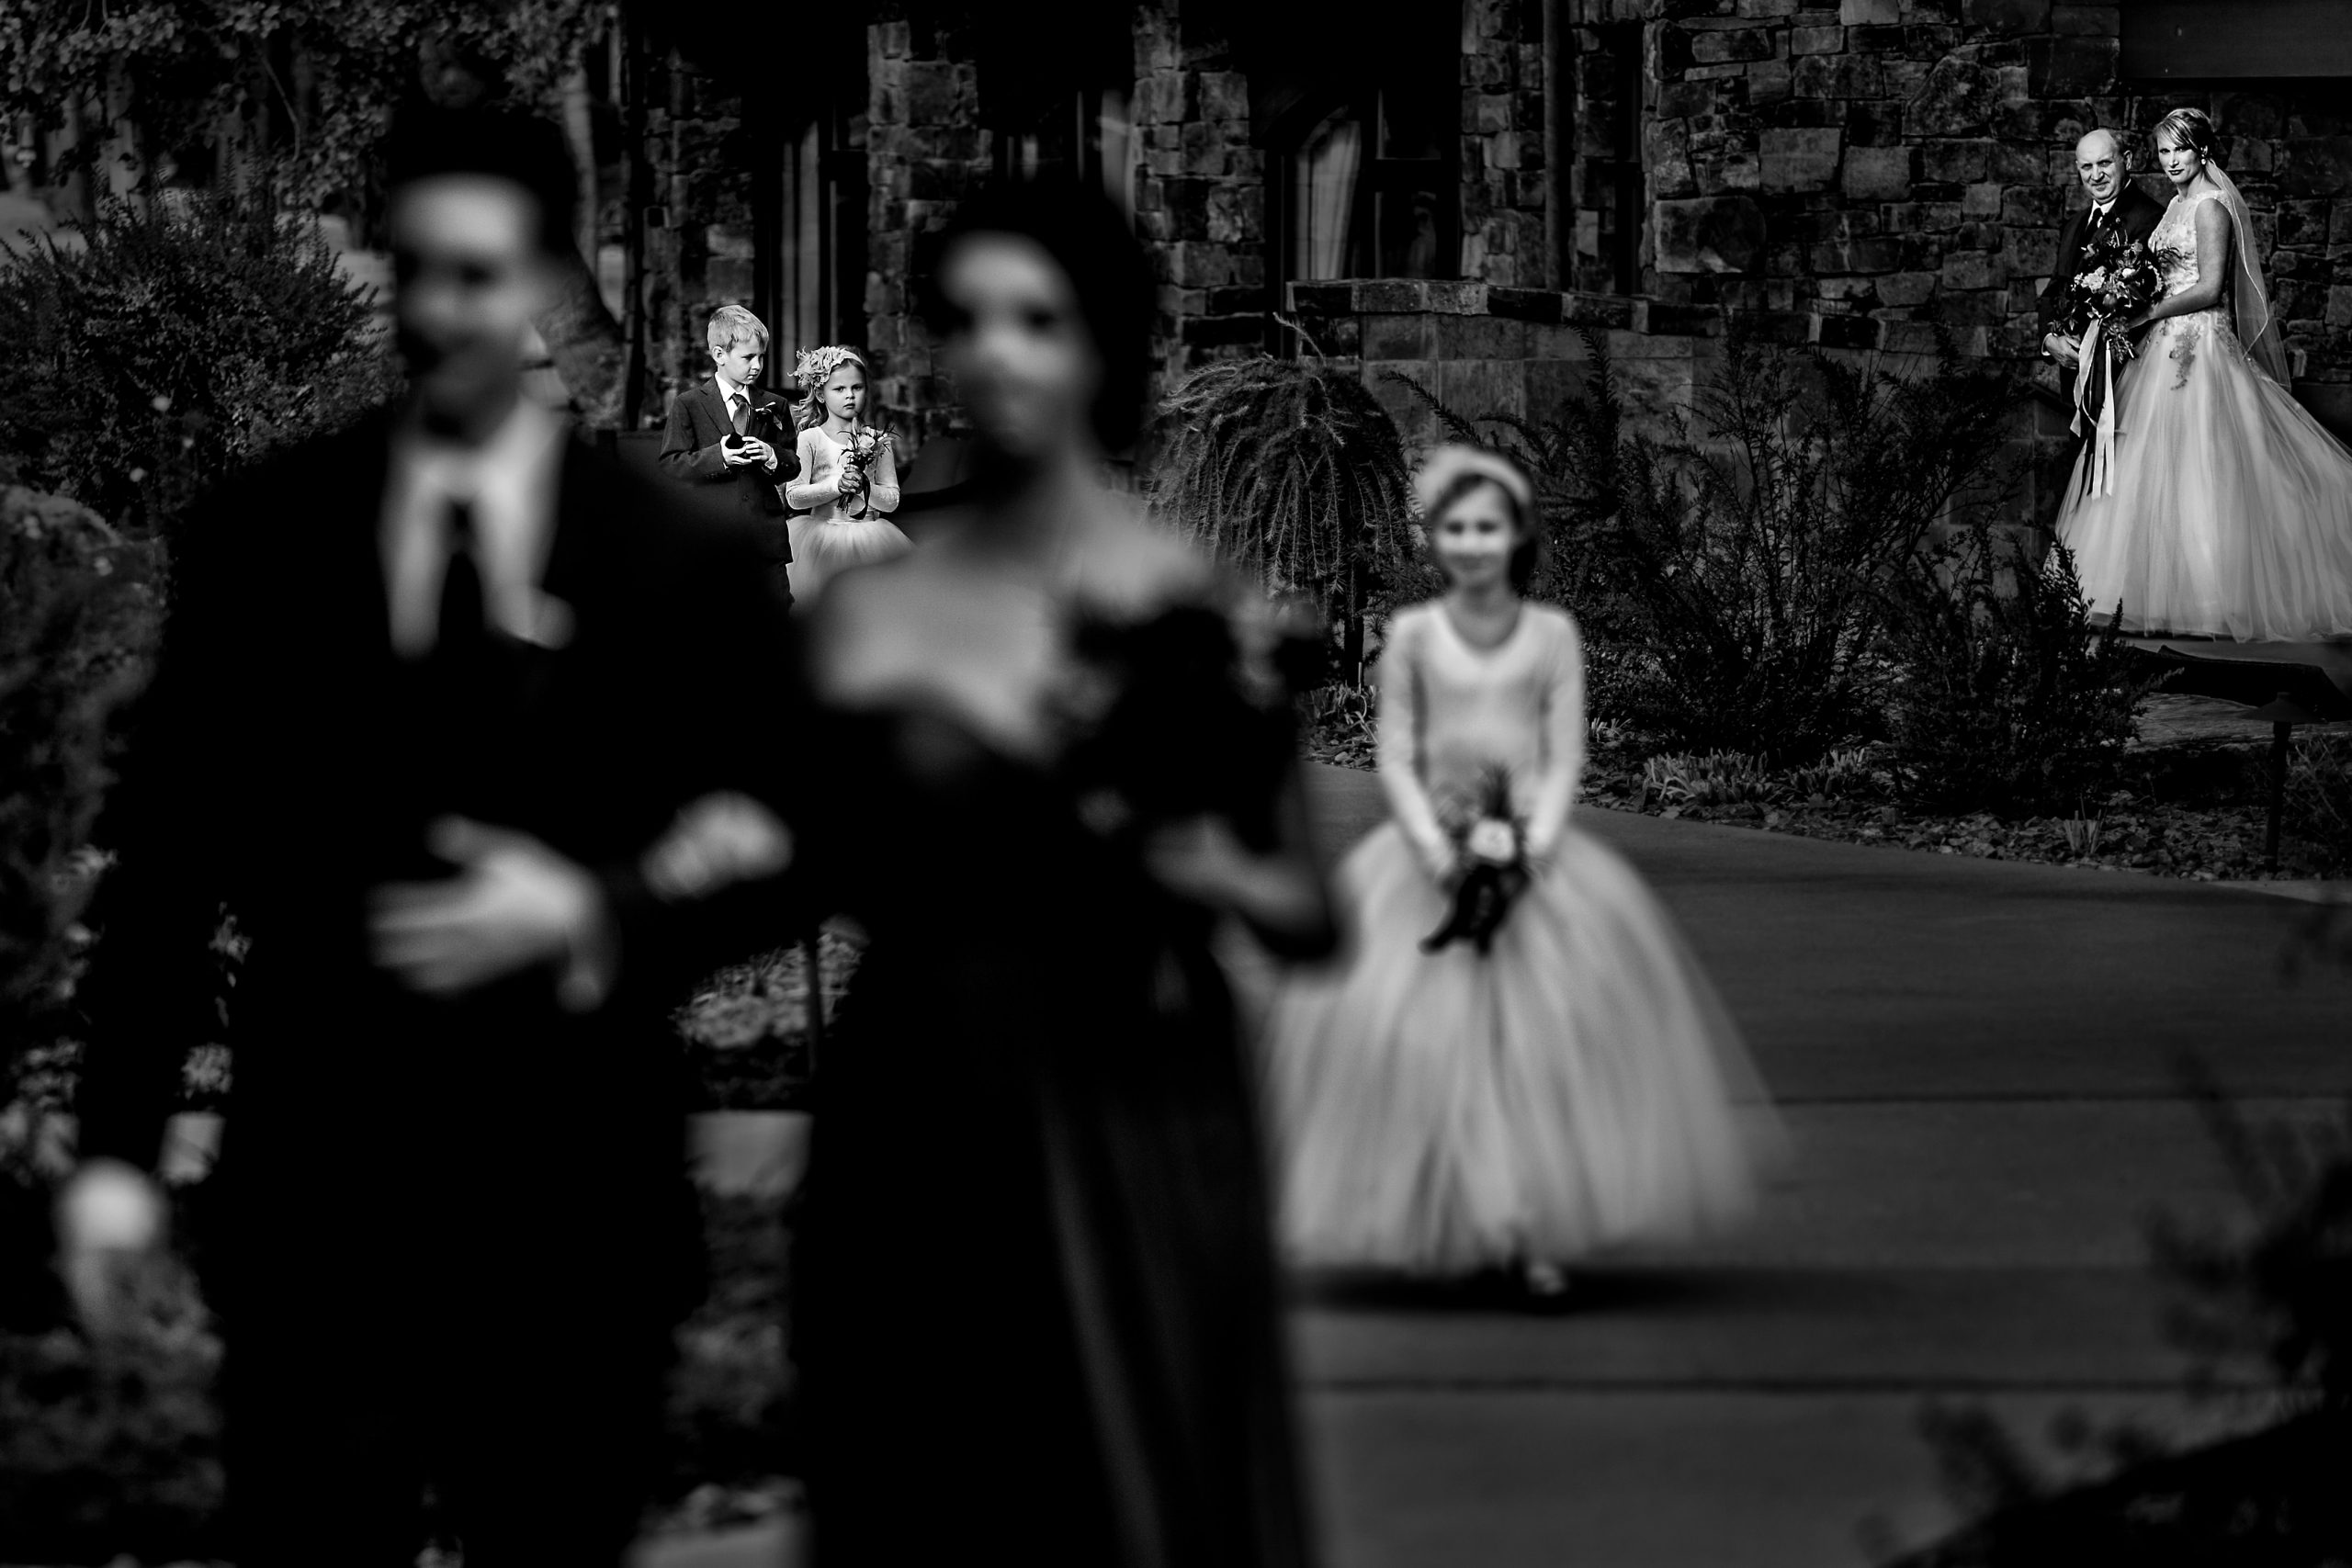 Bride, father-of-the-bride, ring bearer and flower girls at wedding processional